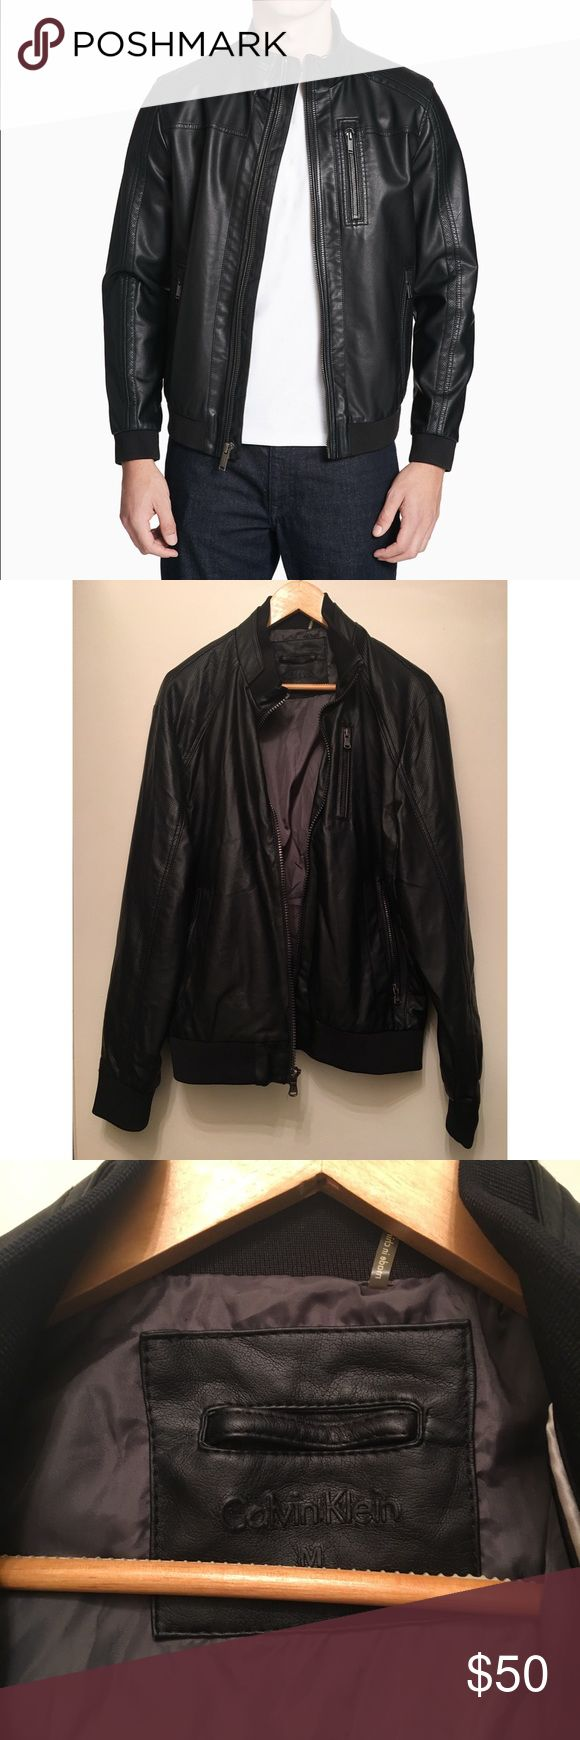 Calvin Klein Men's Black Leather Moto Jacket My boyfriend's leather jacket that he only wore once. It's in great condition. Size M. Feel free to make an offer! Calvin Klein Jackets & Coats Bomber & Varsity